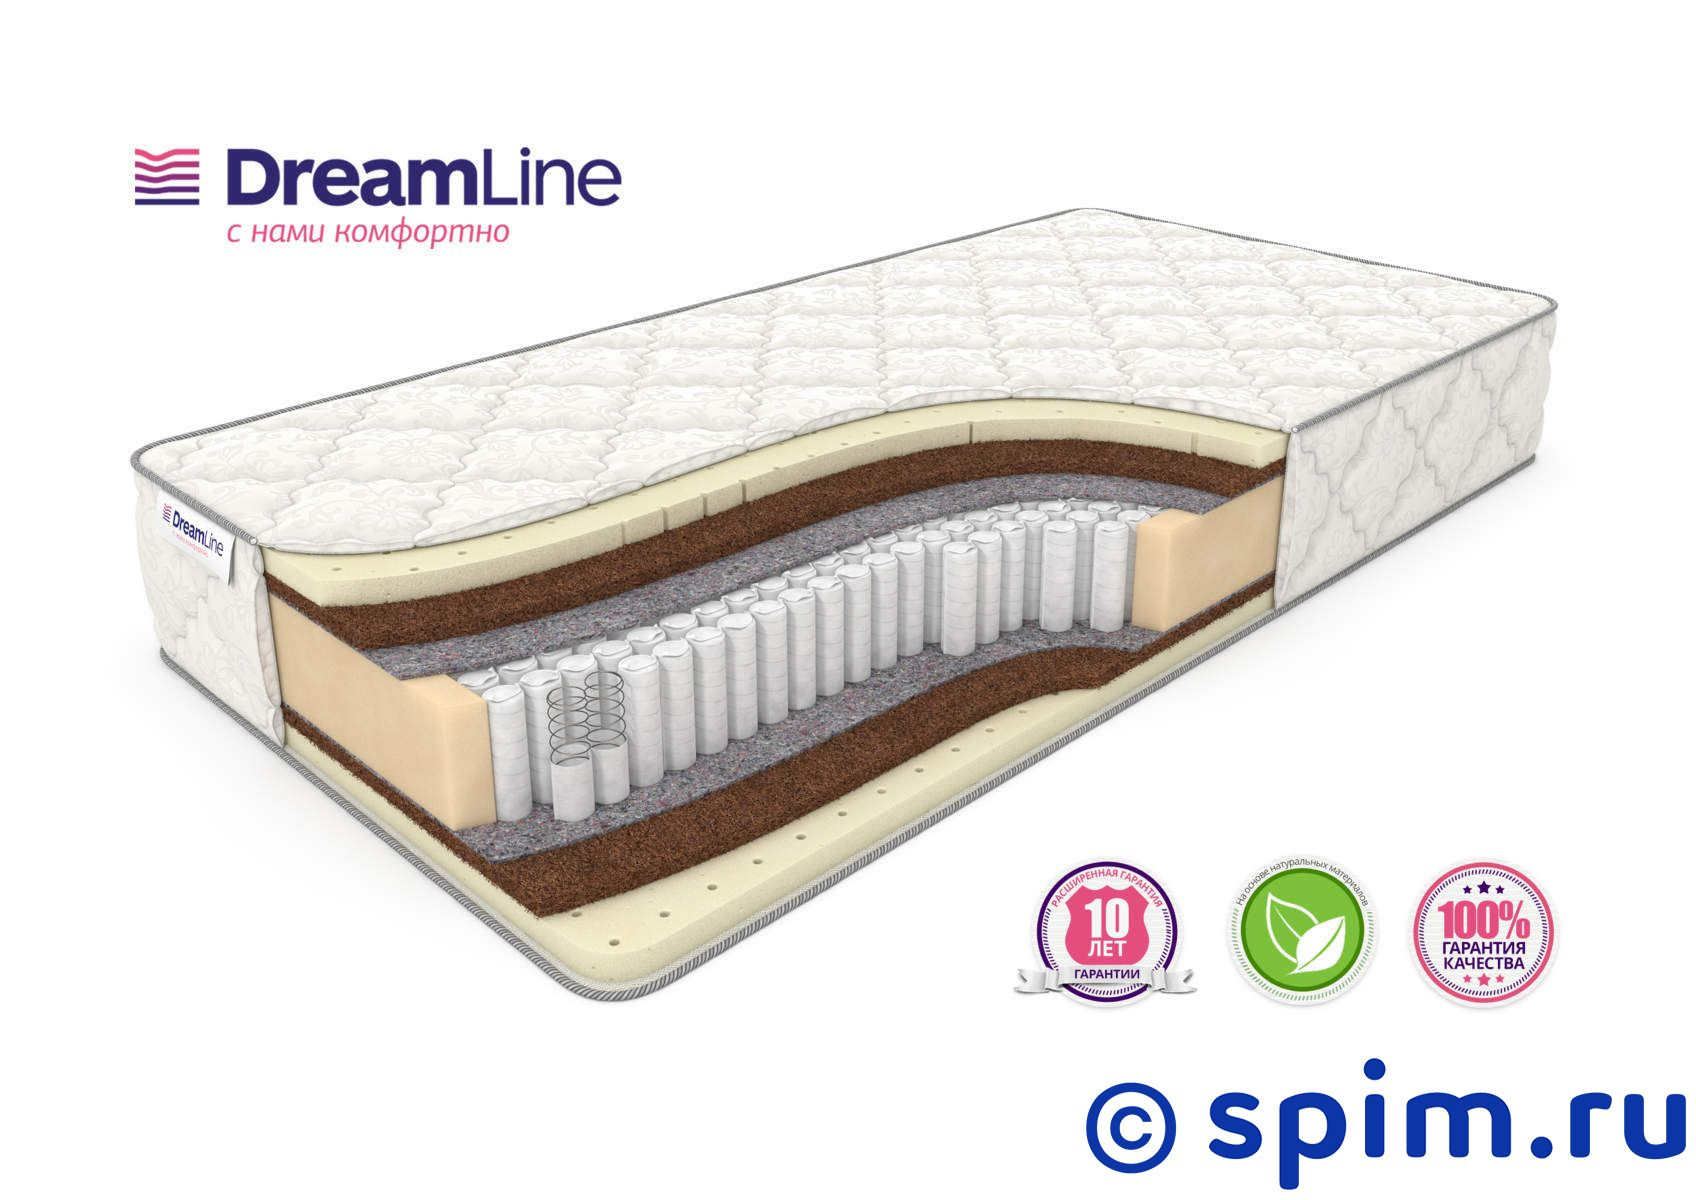 Матрас DreamLine Prime Medium S1000 200х195 см матрас dreamline balance medium s 1000 200x200